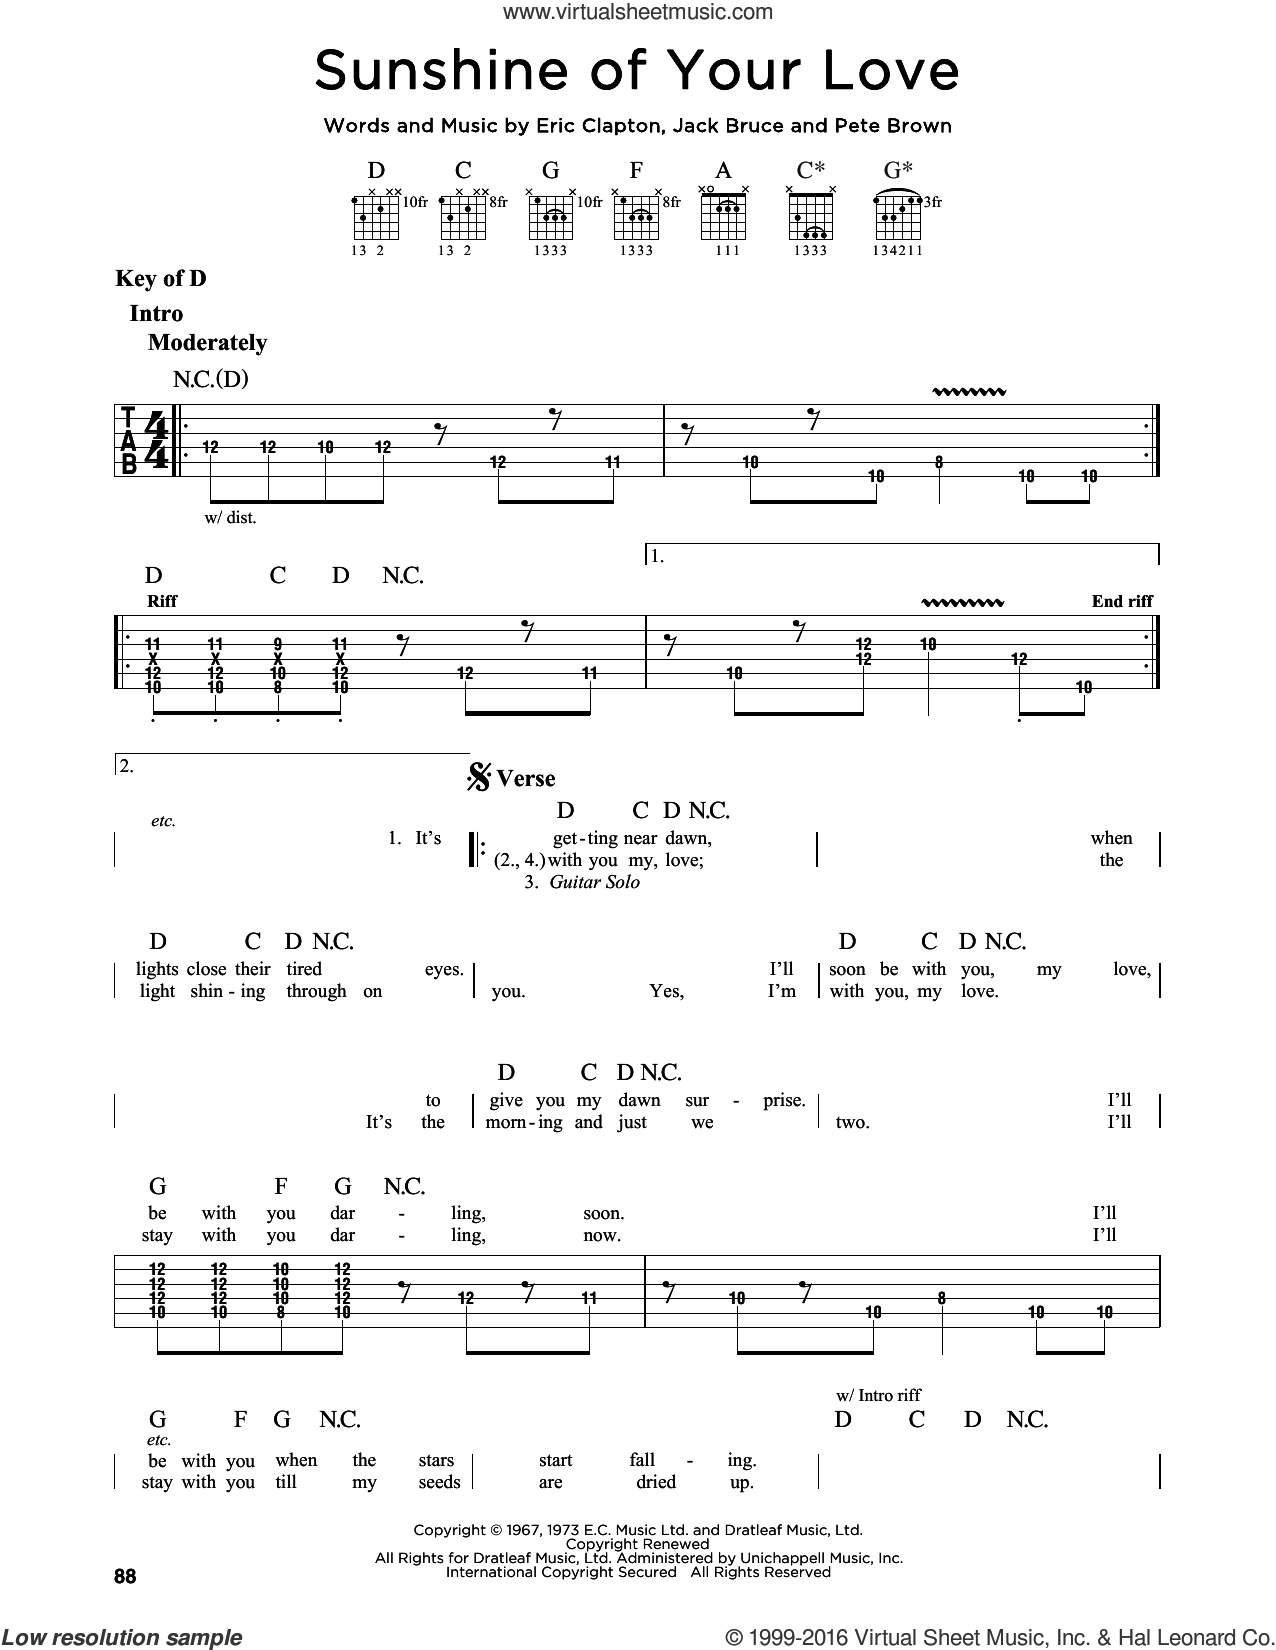 Sunshine Of Your Love sheet music for guitar solo (lead sheet) by Pete Brown